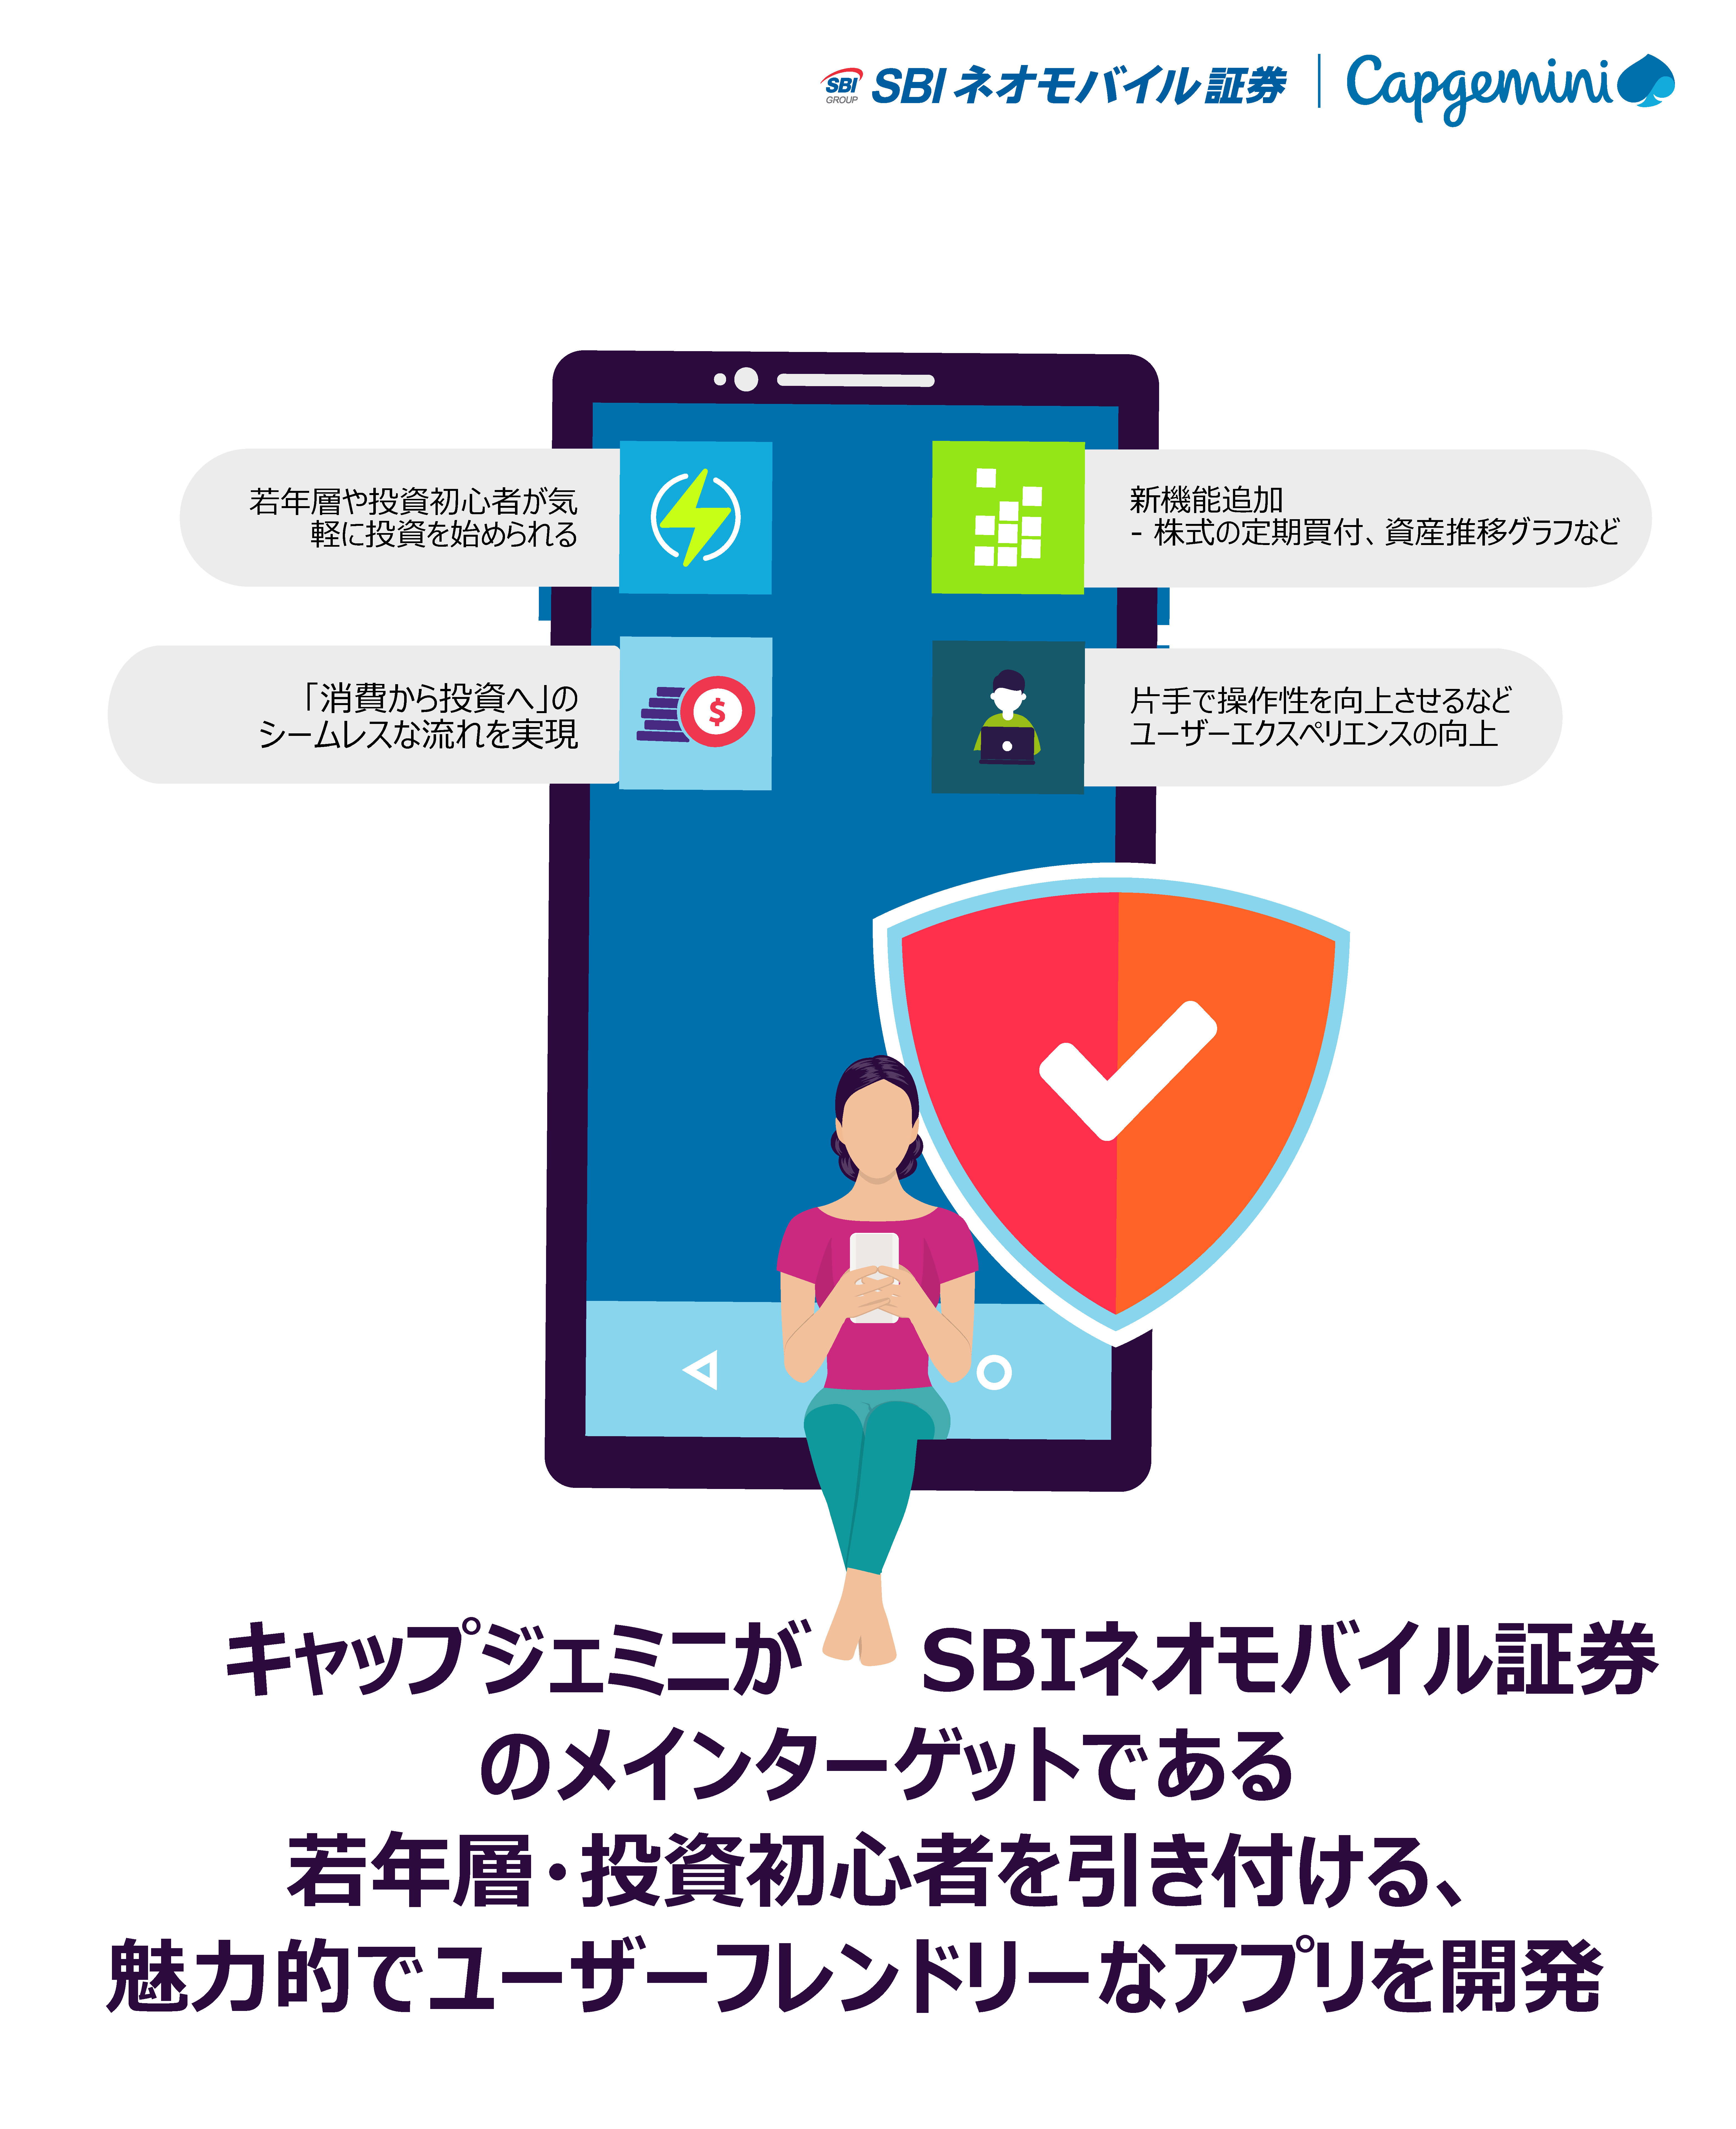 CapgeminiJP _new application